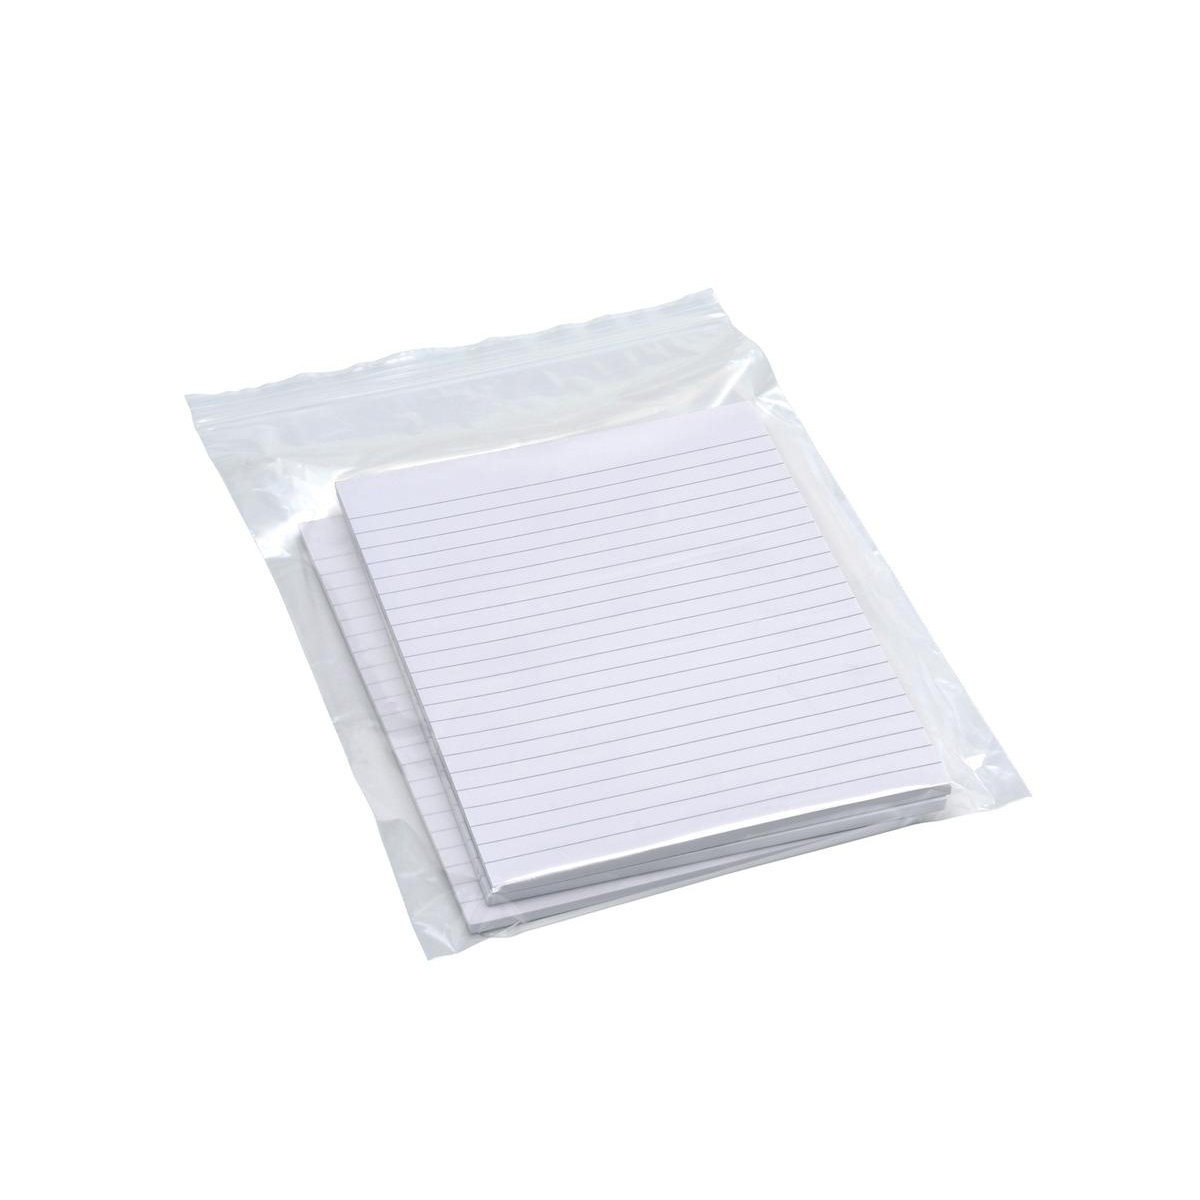 Grip Seal Polythene Bags Resealable Plain 40 Micron 150x229mm PG11 Pack 1000